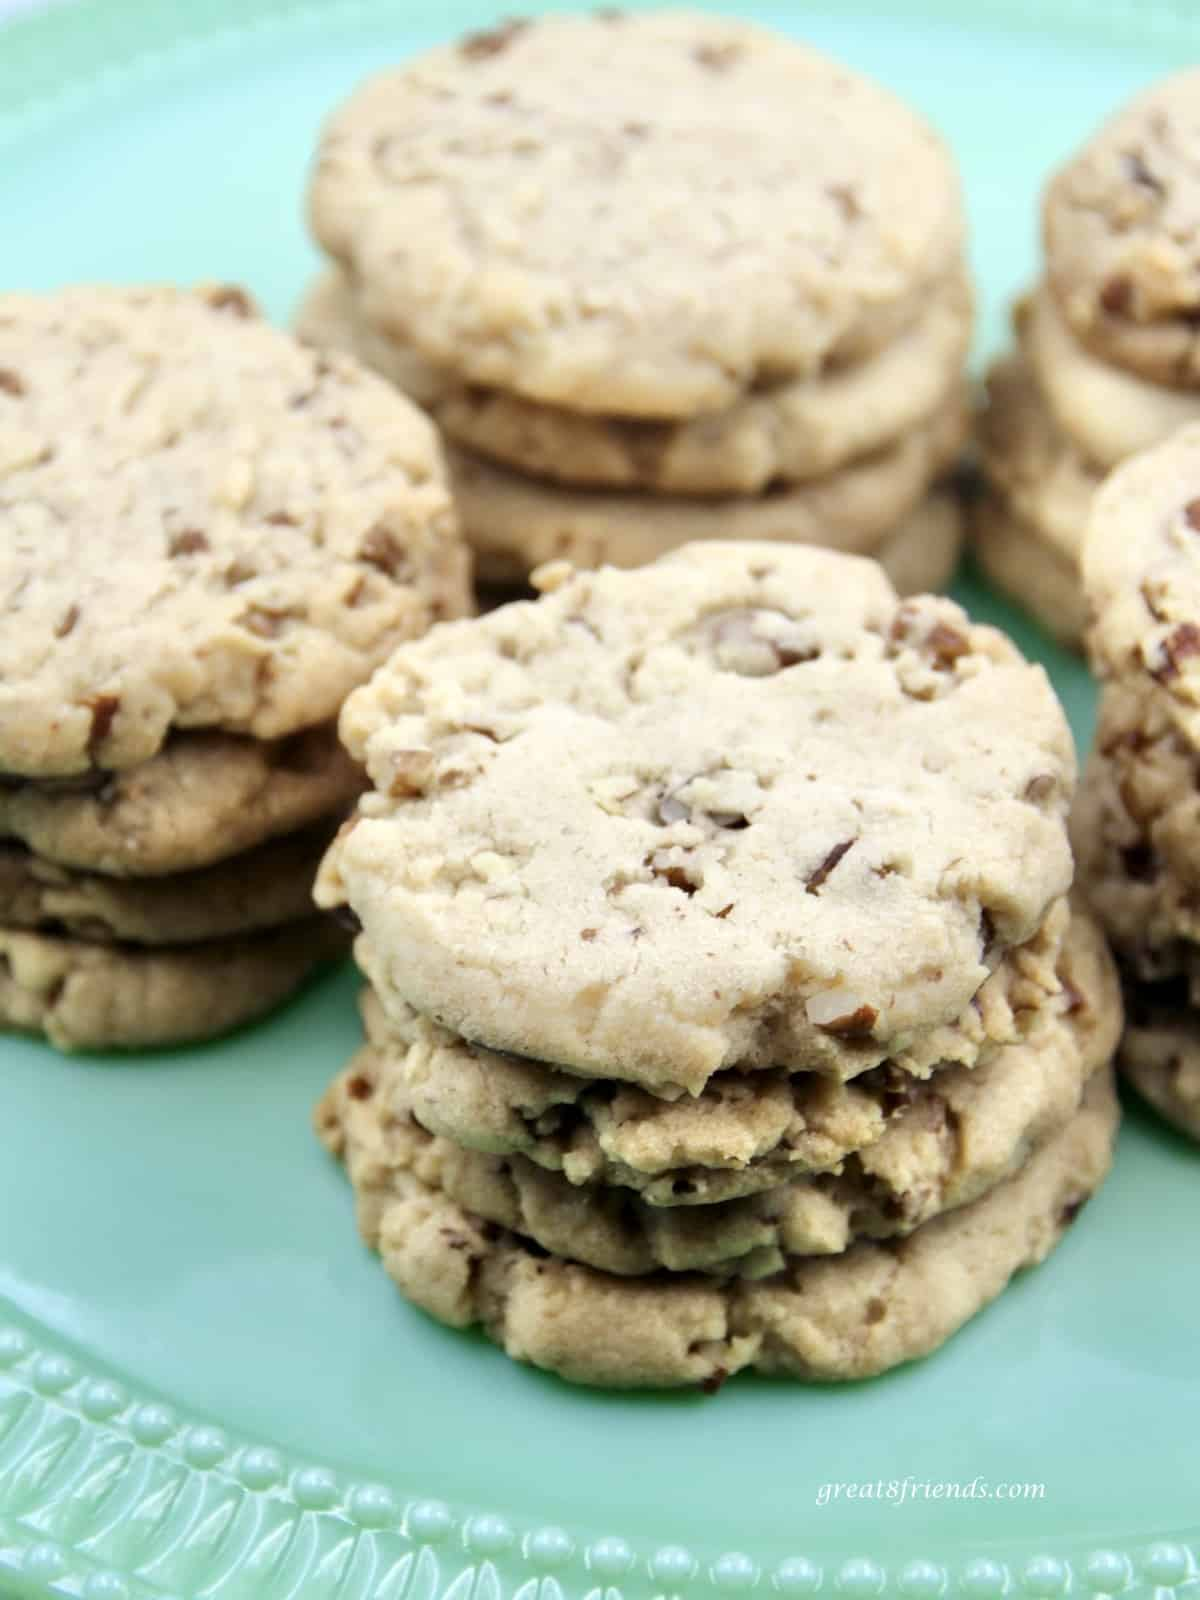 Pecan cookies stacked on a green cake plate.